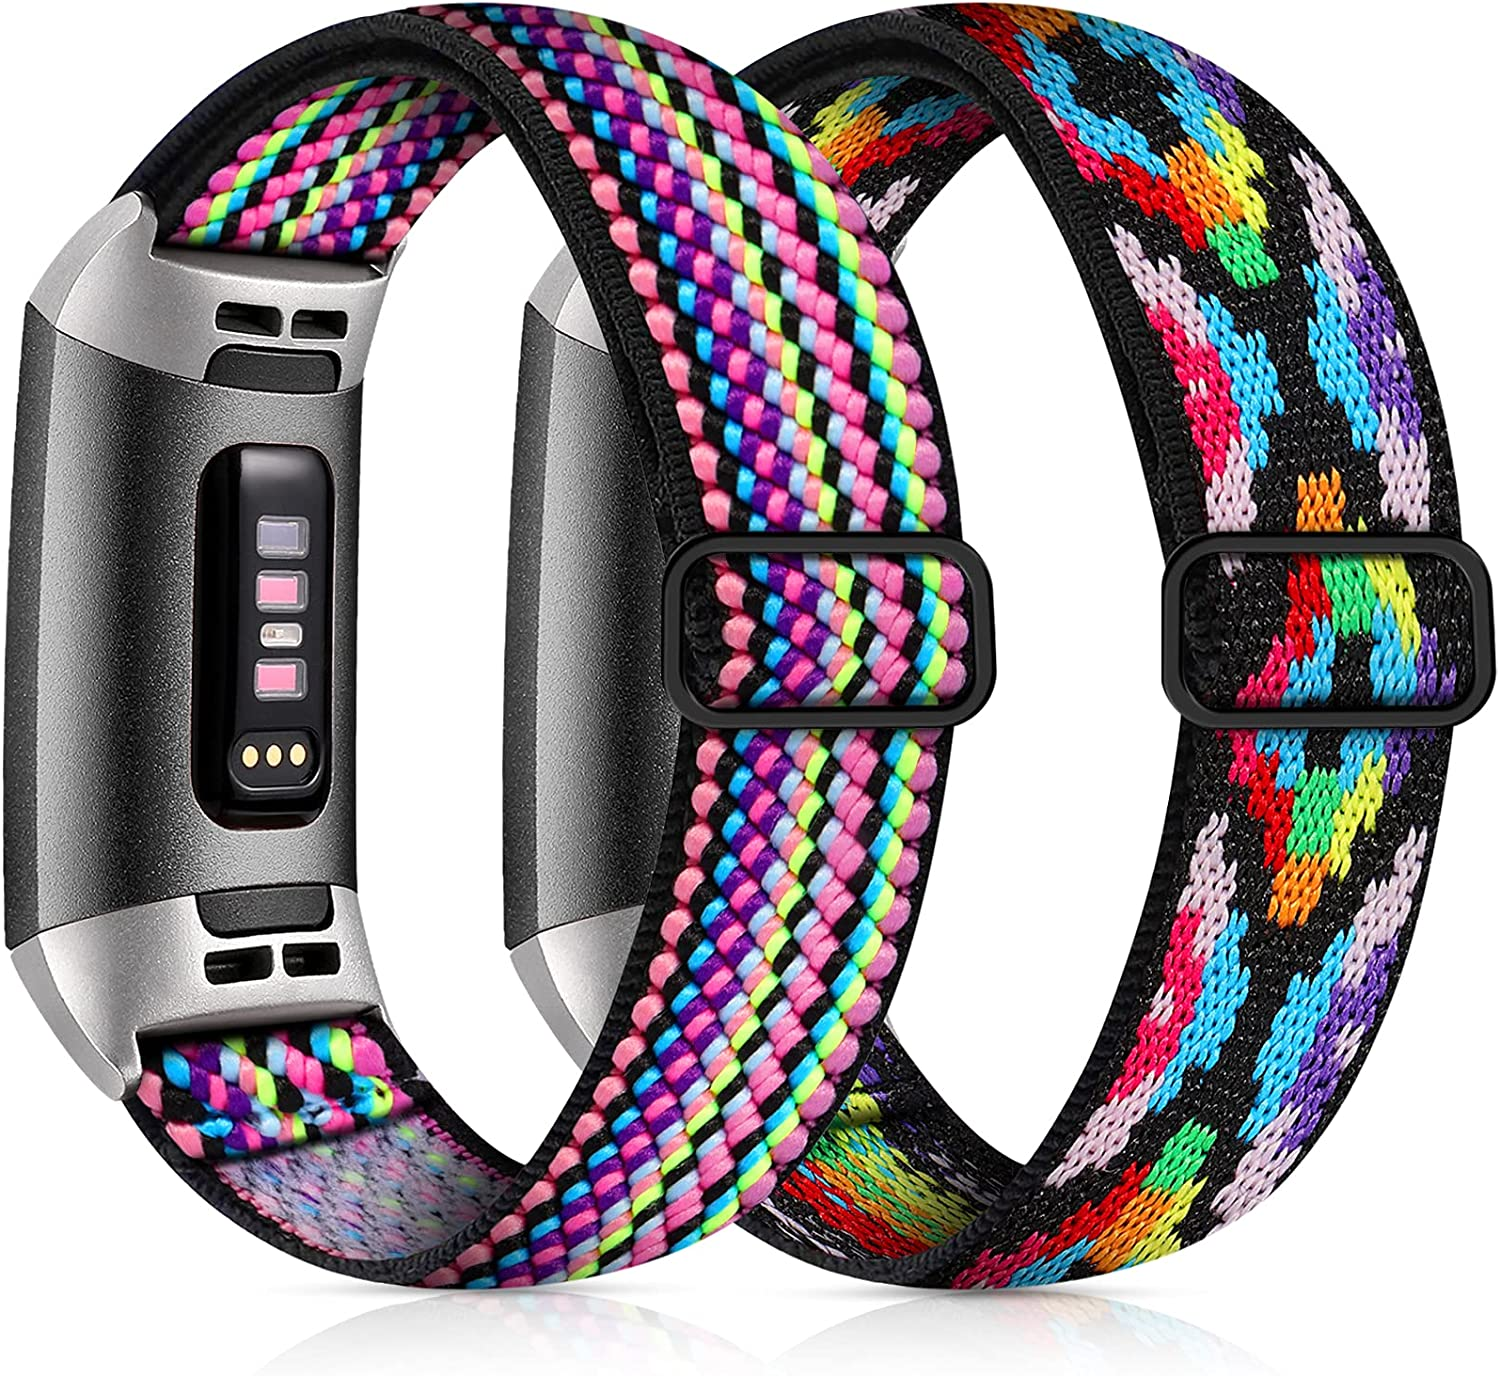 GEAK Elastic Band for Fitbit Charge 3/Fitbit Charge 4 Bands, Adjustable Stretch Breathable Nylon Fabric Pattern Replacement Strap for Fitbit Charge 3 Bands Women Men Aztec Colorful/Colorful Rope